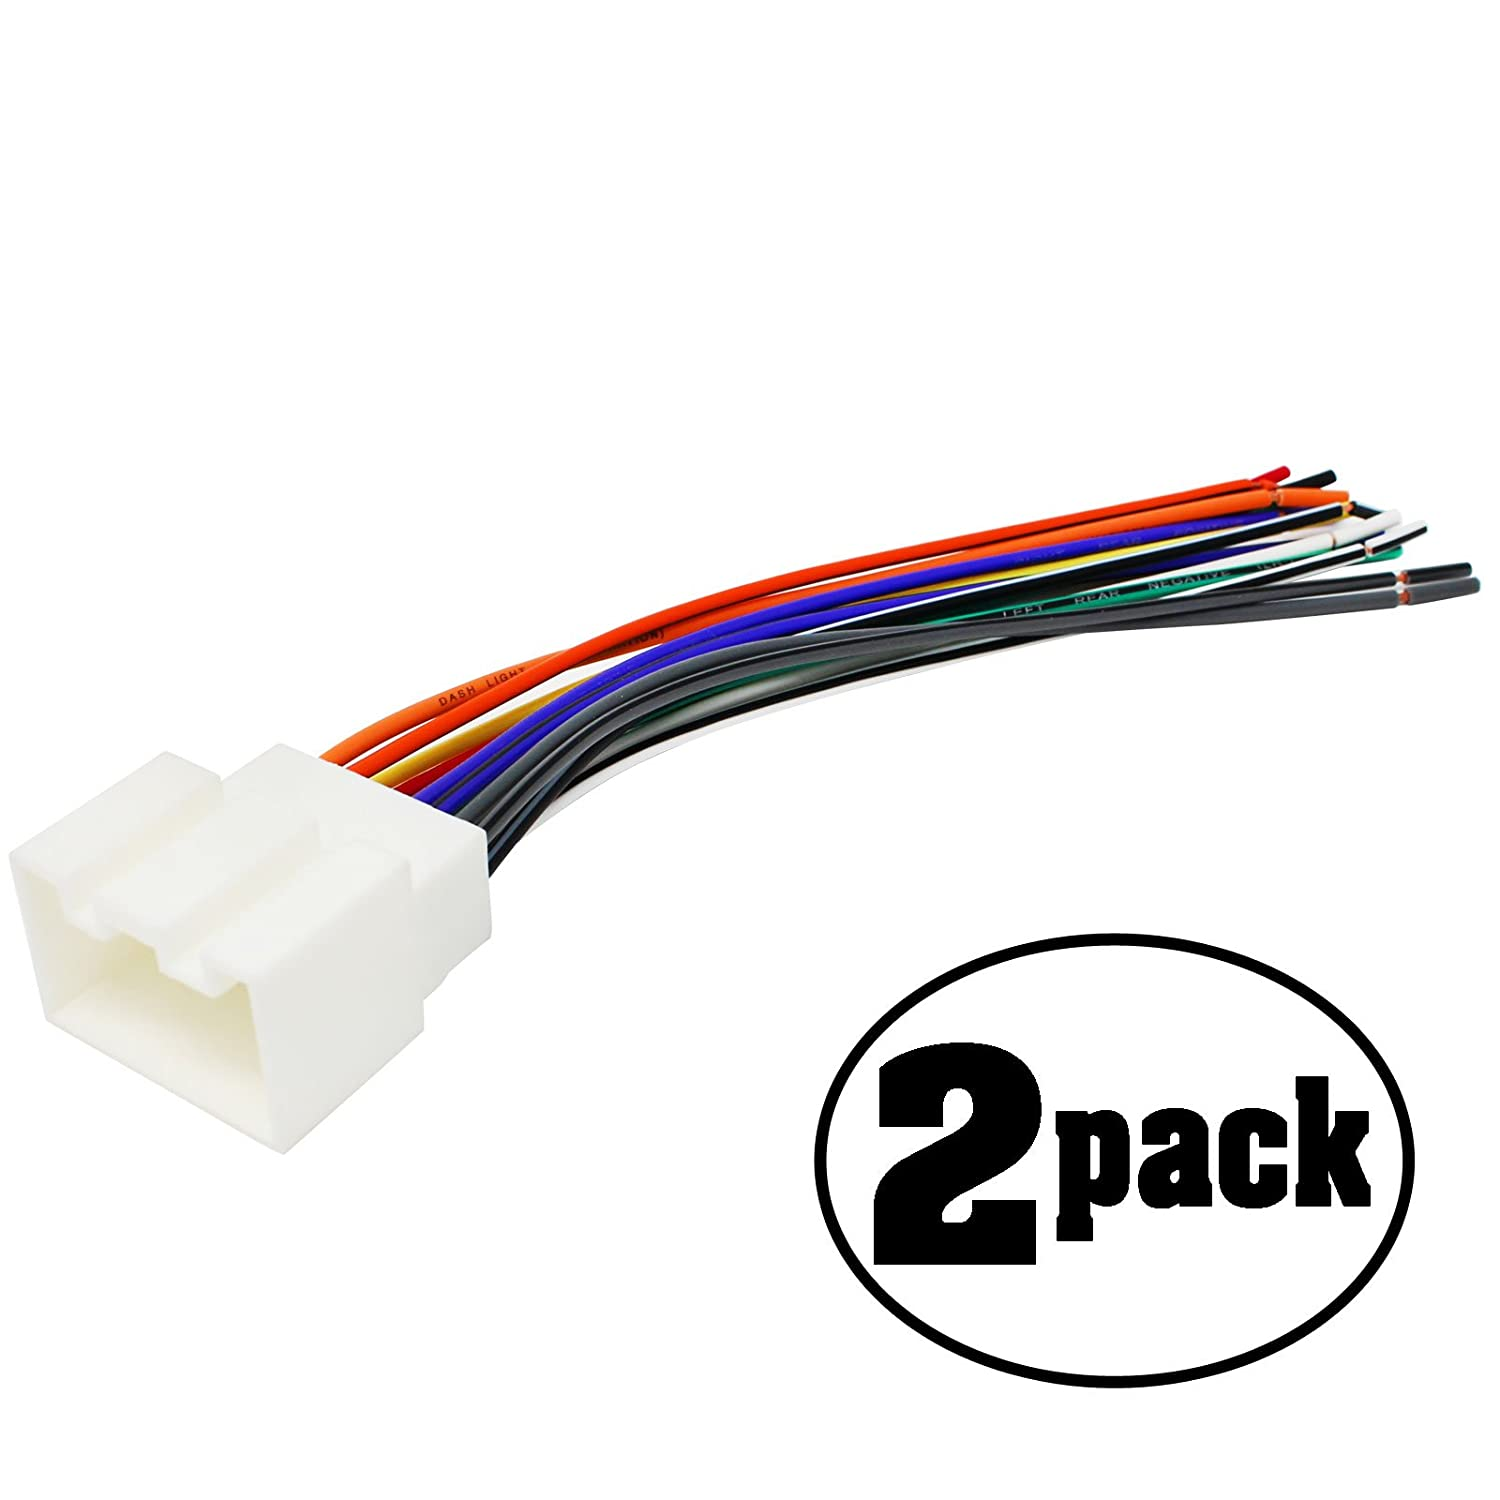 Amazon.com: 2-Pack Replacement Radio Wiring Harness for 2004 Ford F on ford generator wiring diagram, ford wiring color codes, ford truck wiring diagrams,